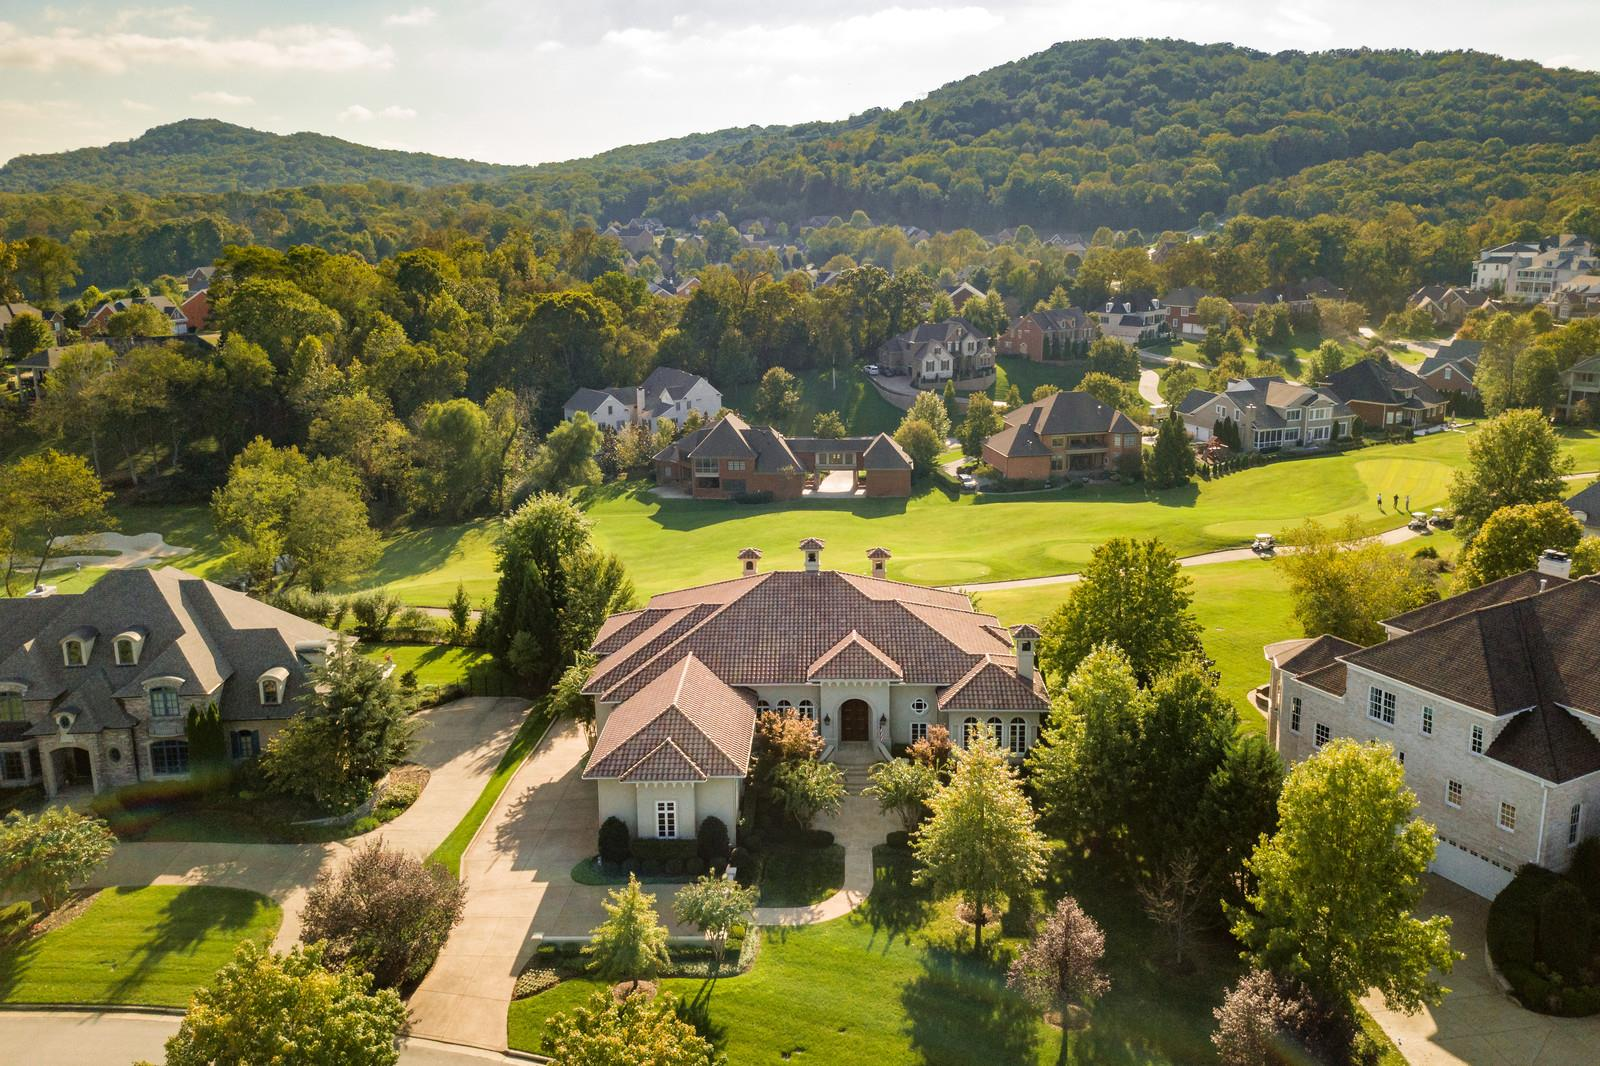 45 Governors Way, Brentwood, Tennessee